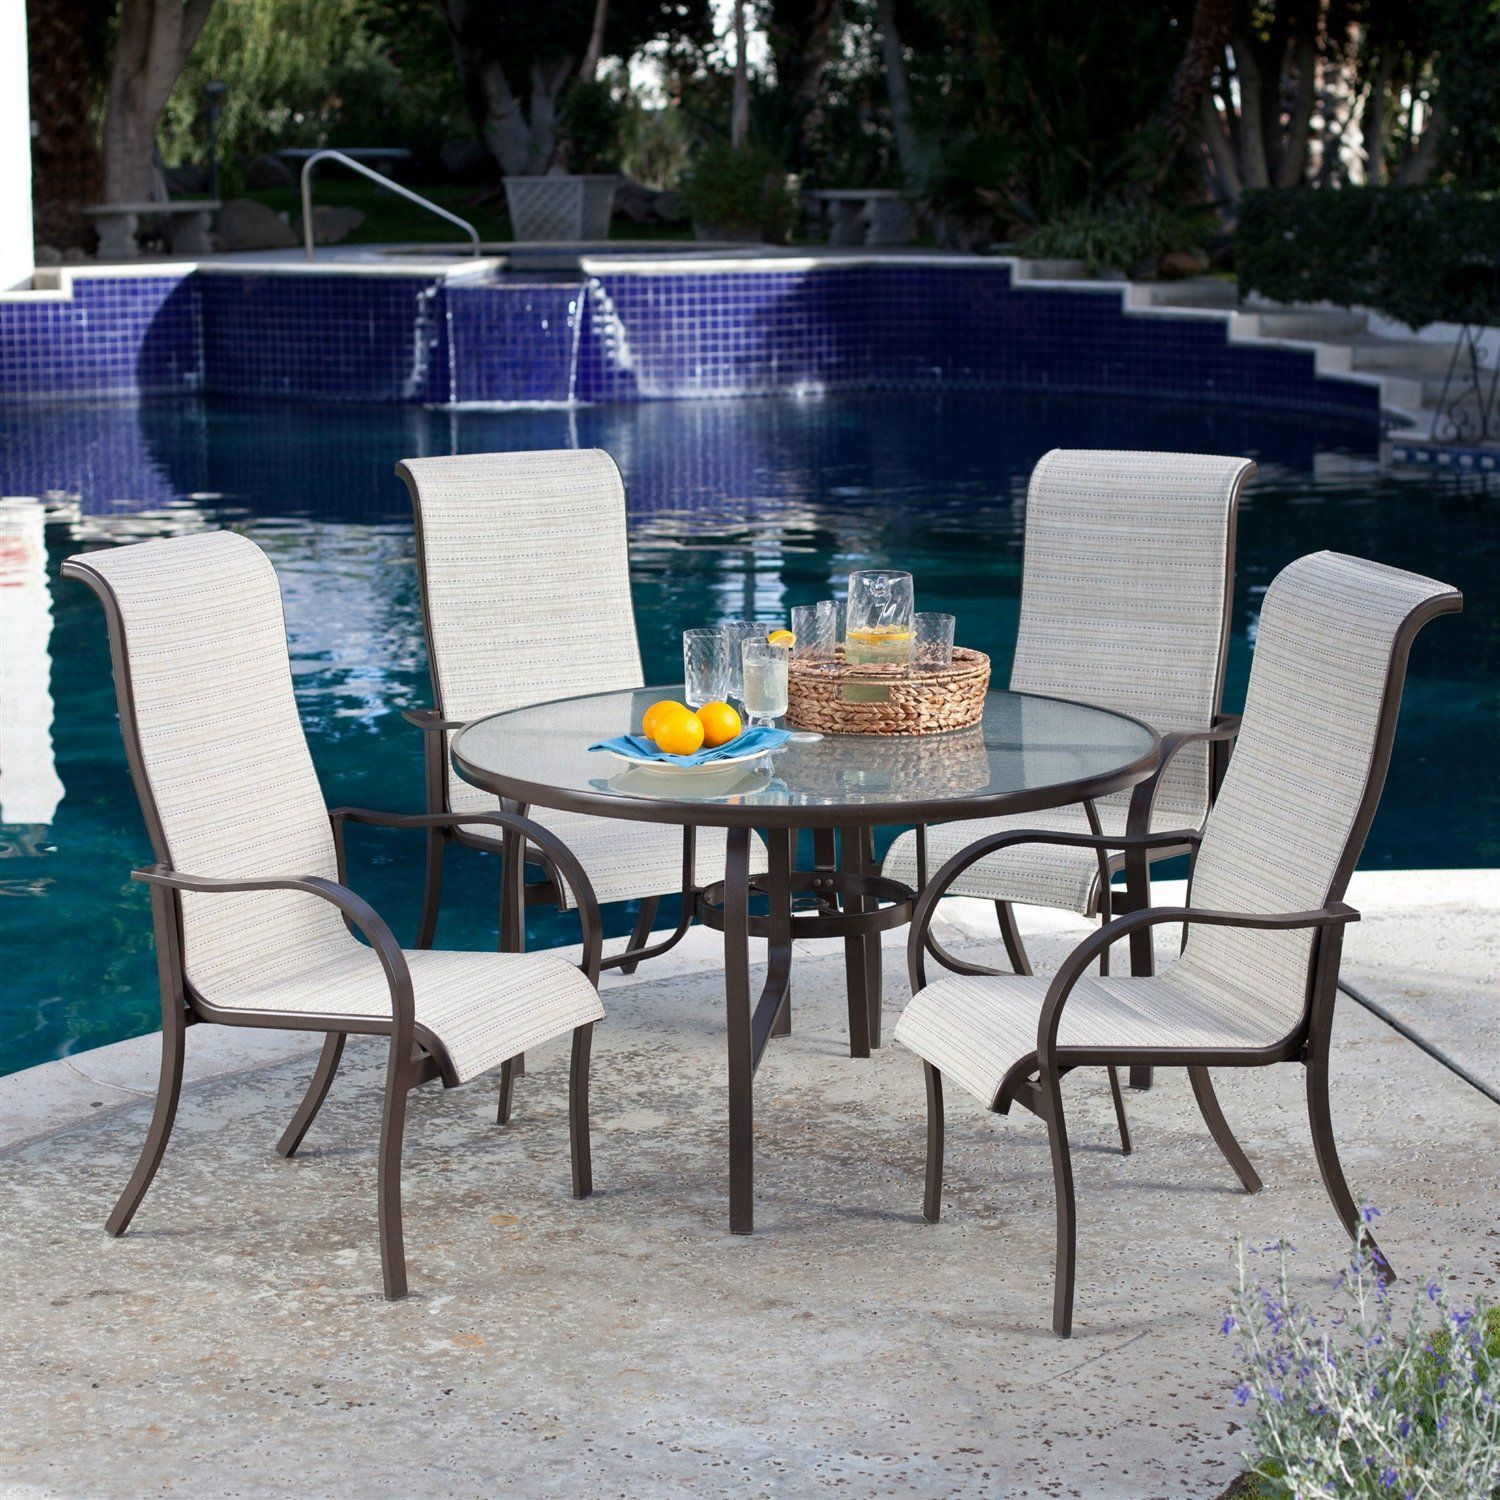 5-Piece Patio Furniture Dining Set with Round Table and 4 Padded ...